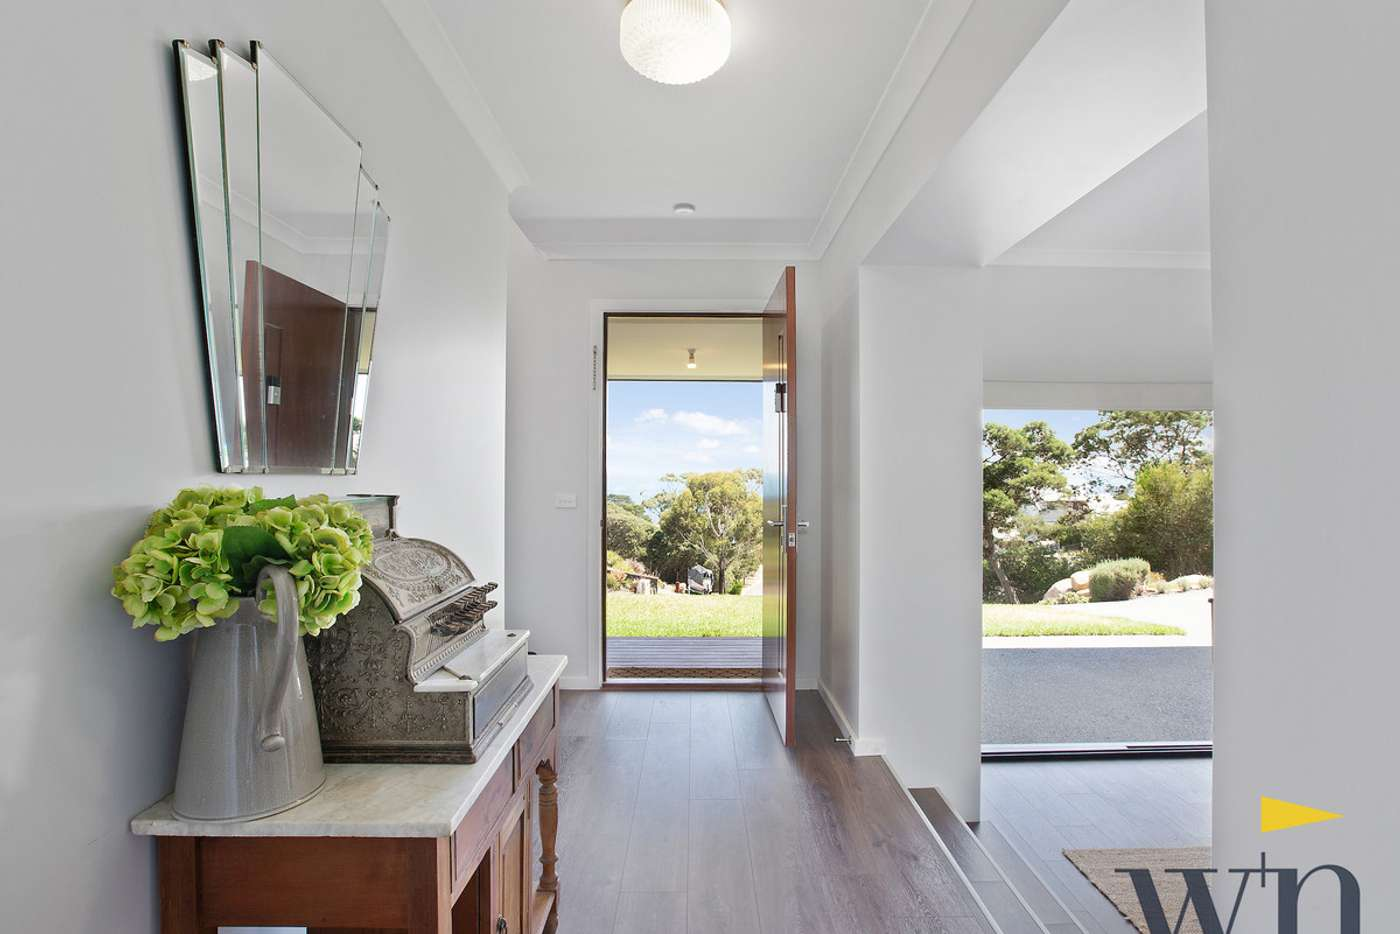 Fifth view of Homely house listing, 4 Carool Court, Mount Martha VIC 3934